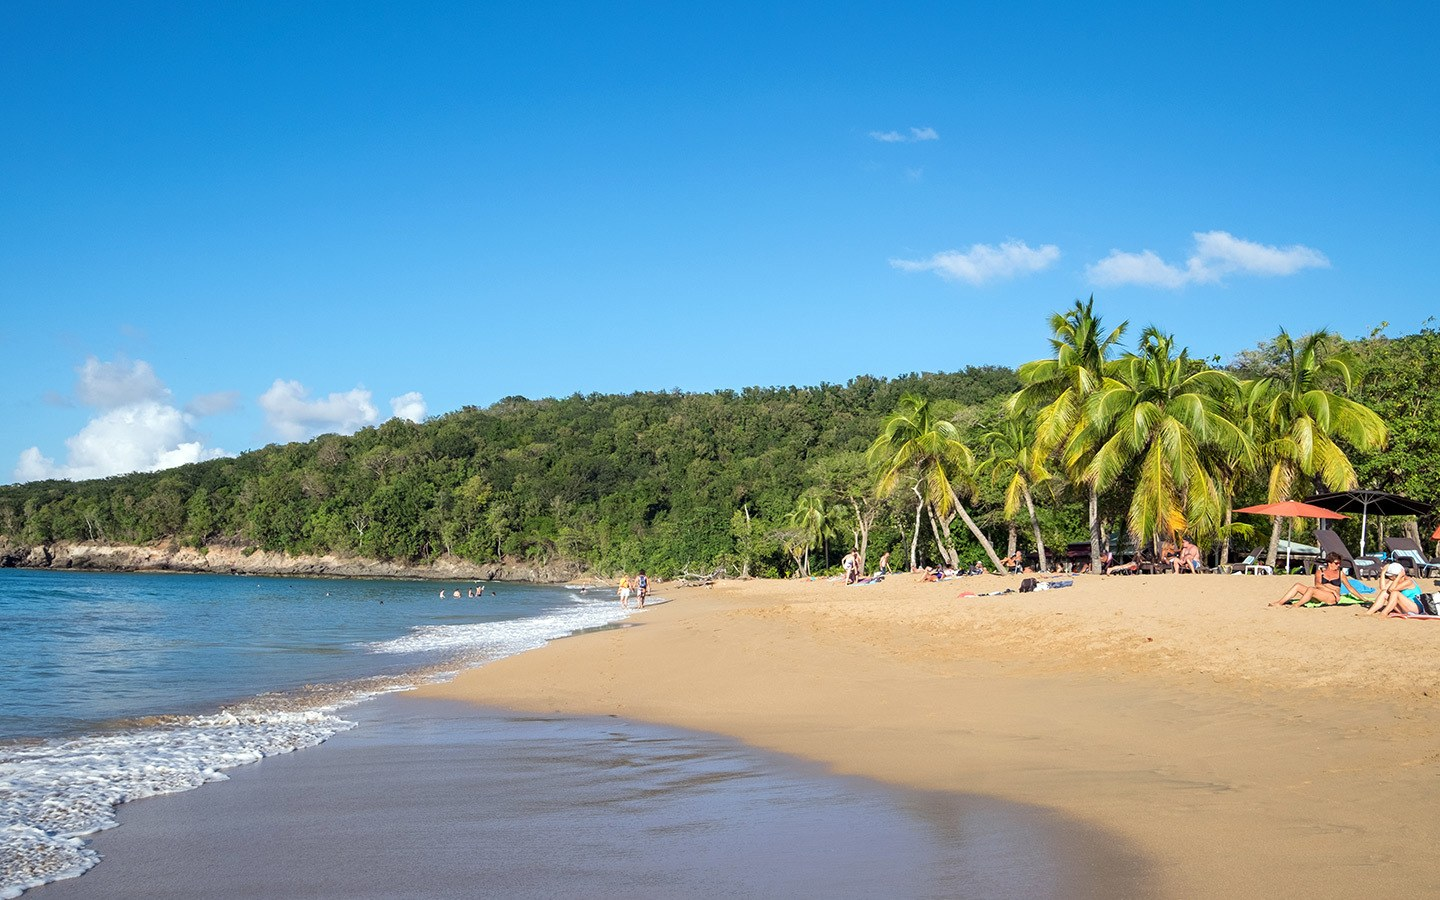 Discover the best things to do in Guadeloupe in the French Caribbean – with highlights from Grand-Terre and Basse-Terre including beautiful beaches, waterfalls, rum distilleries and jungle hikes.